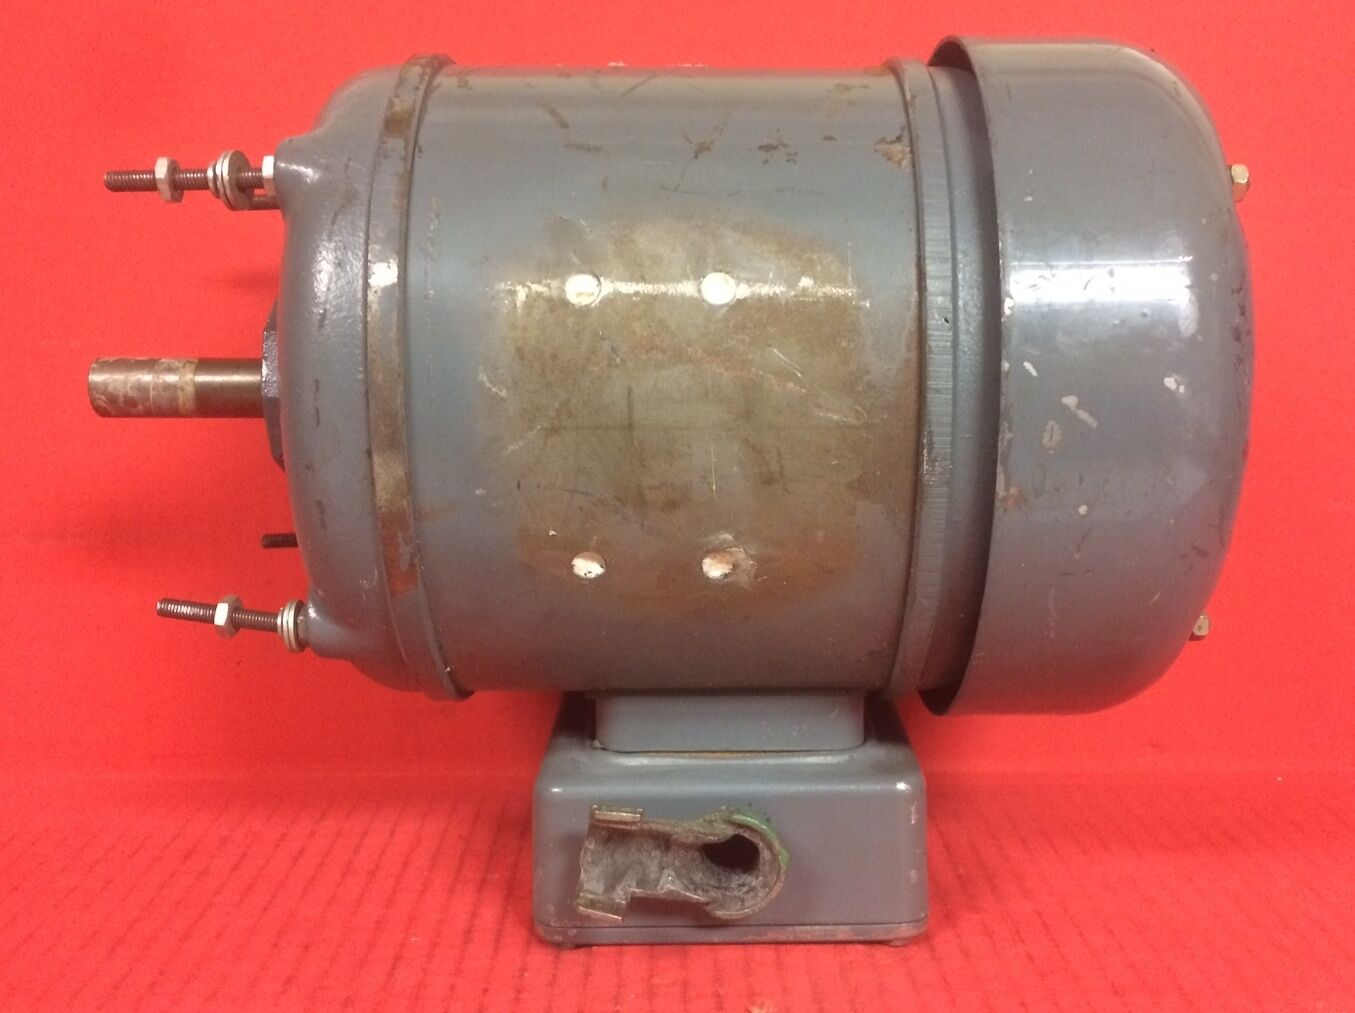 3 of 6 Hawker Siddeley Electric Motor Nr. T386996 - 1/2HP, 1720 RPM, 575V 4 of 6 Hawker Siddeley Electric Motor ...